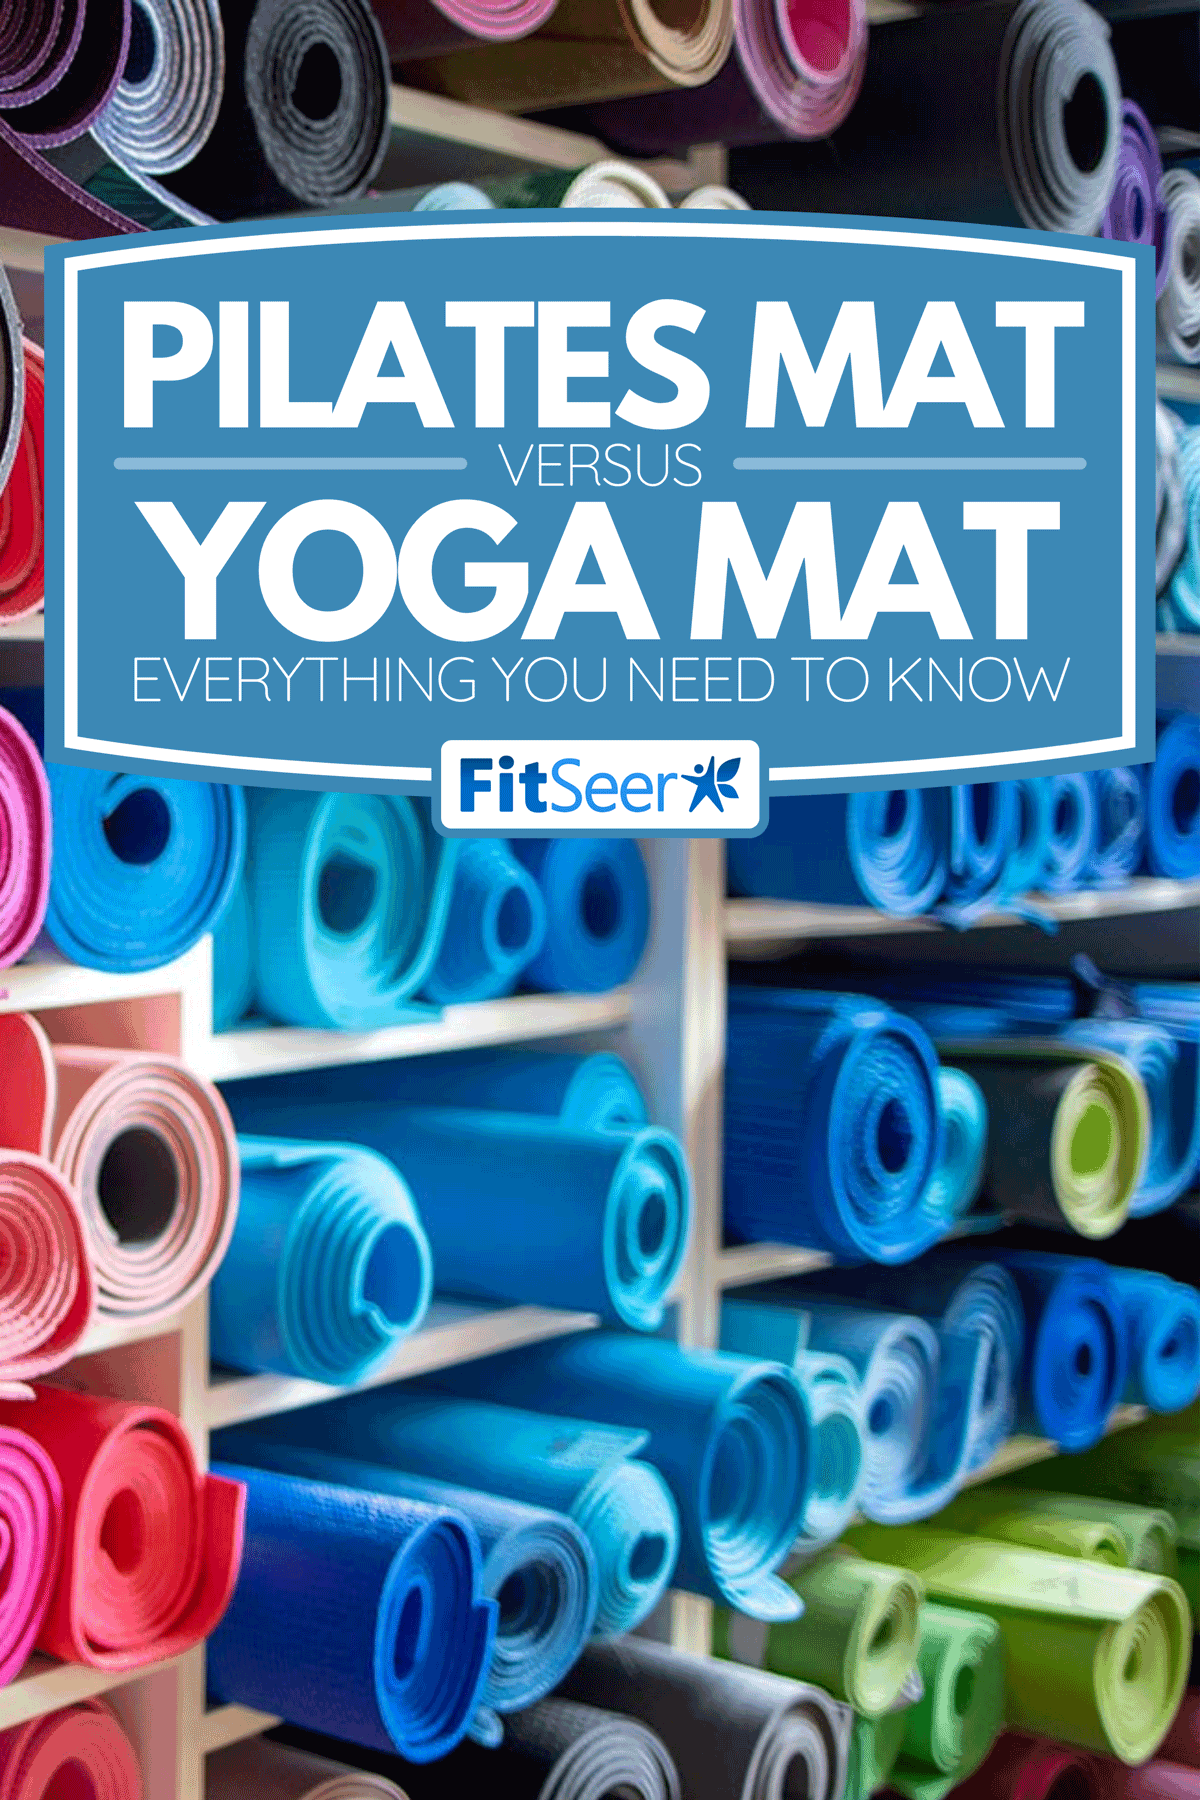 Colored exercise mats on shelves, Pilates Mat Vs. Yoga Mat - Everything You Need To Know